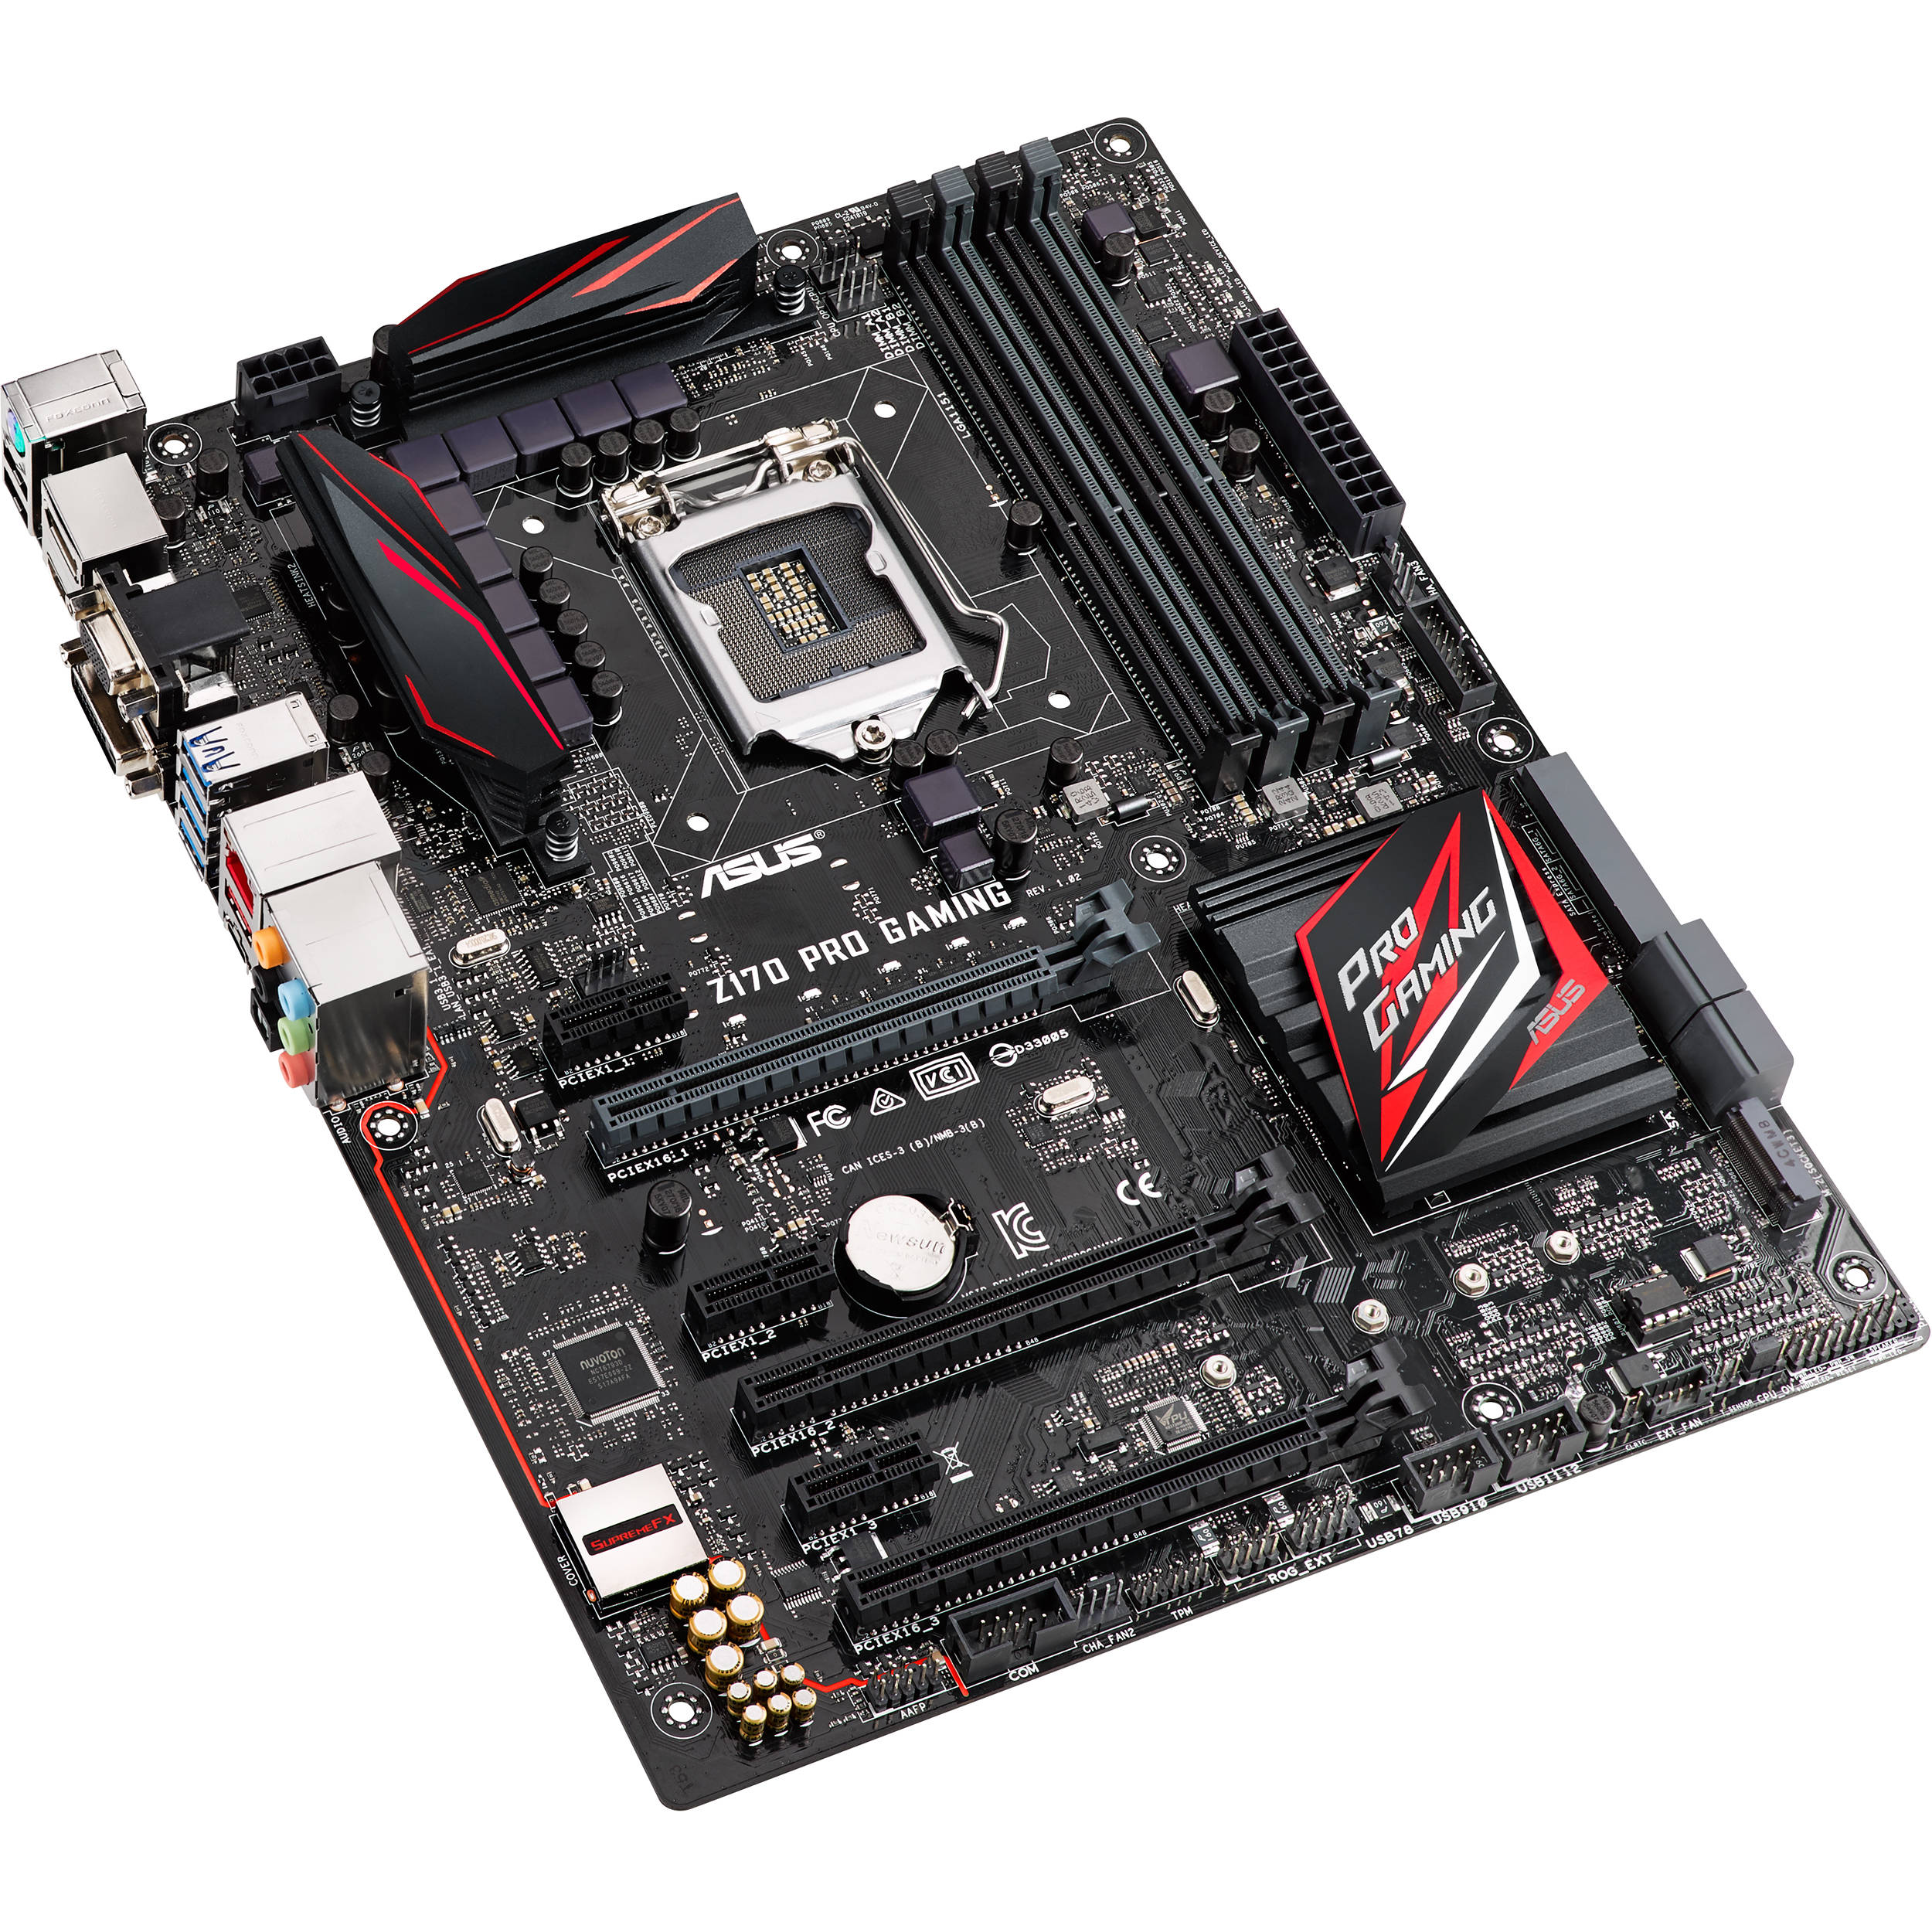 ASUS Z170 PRO GAMING CHIPSET DRIVER